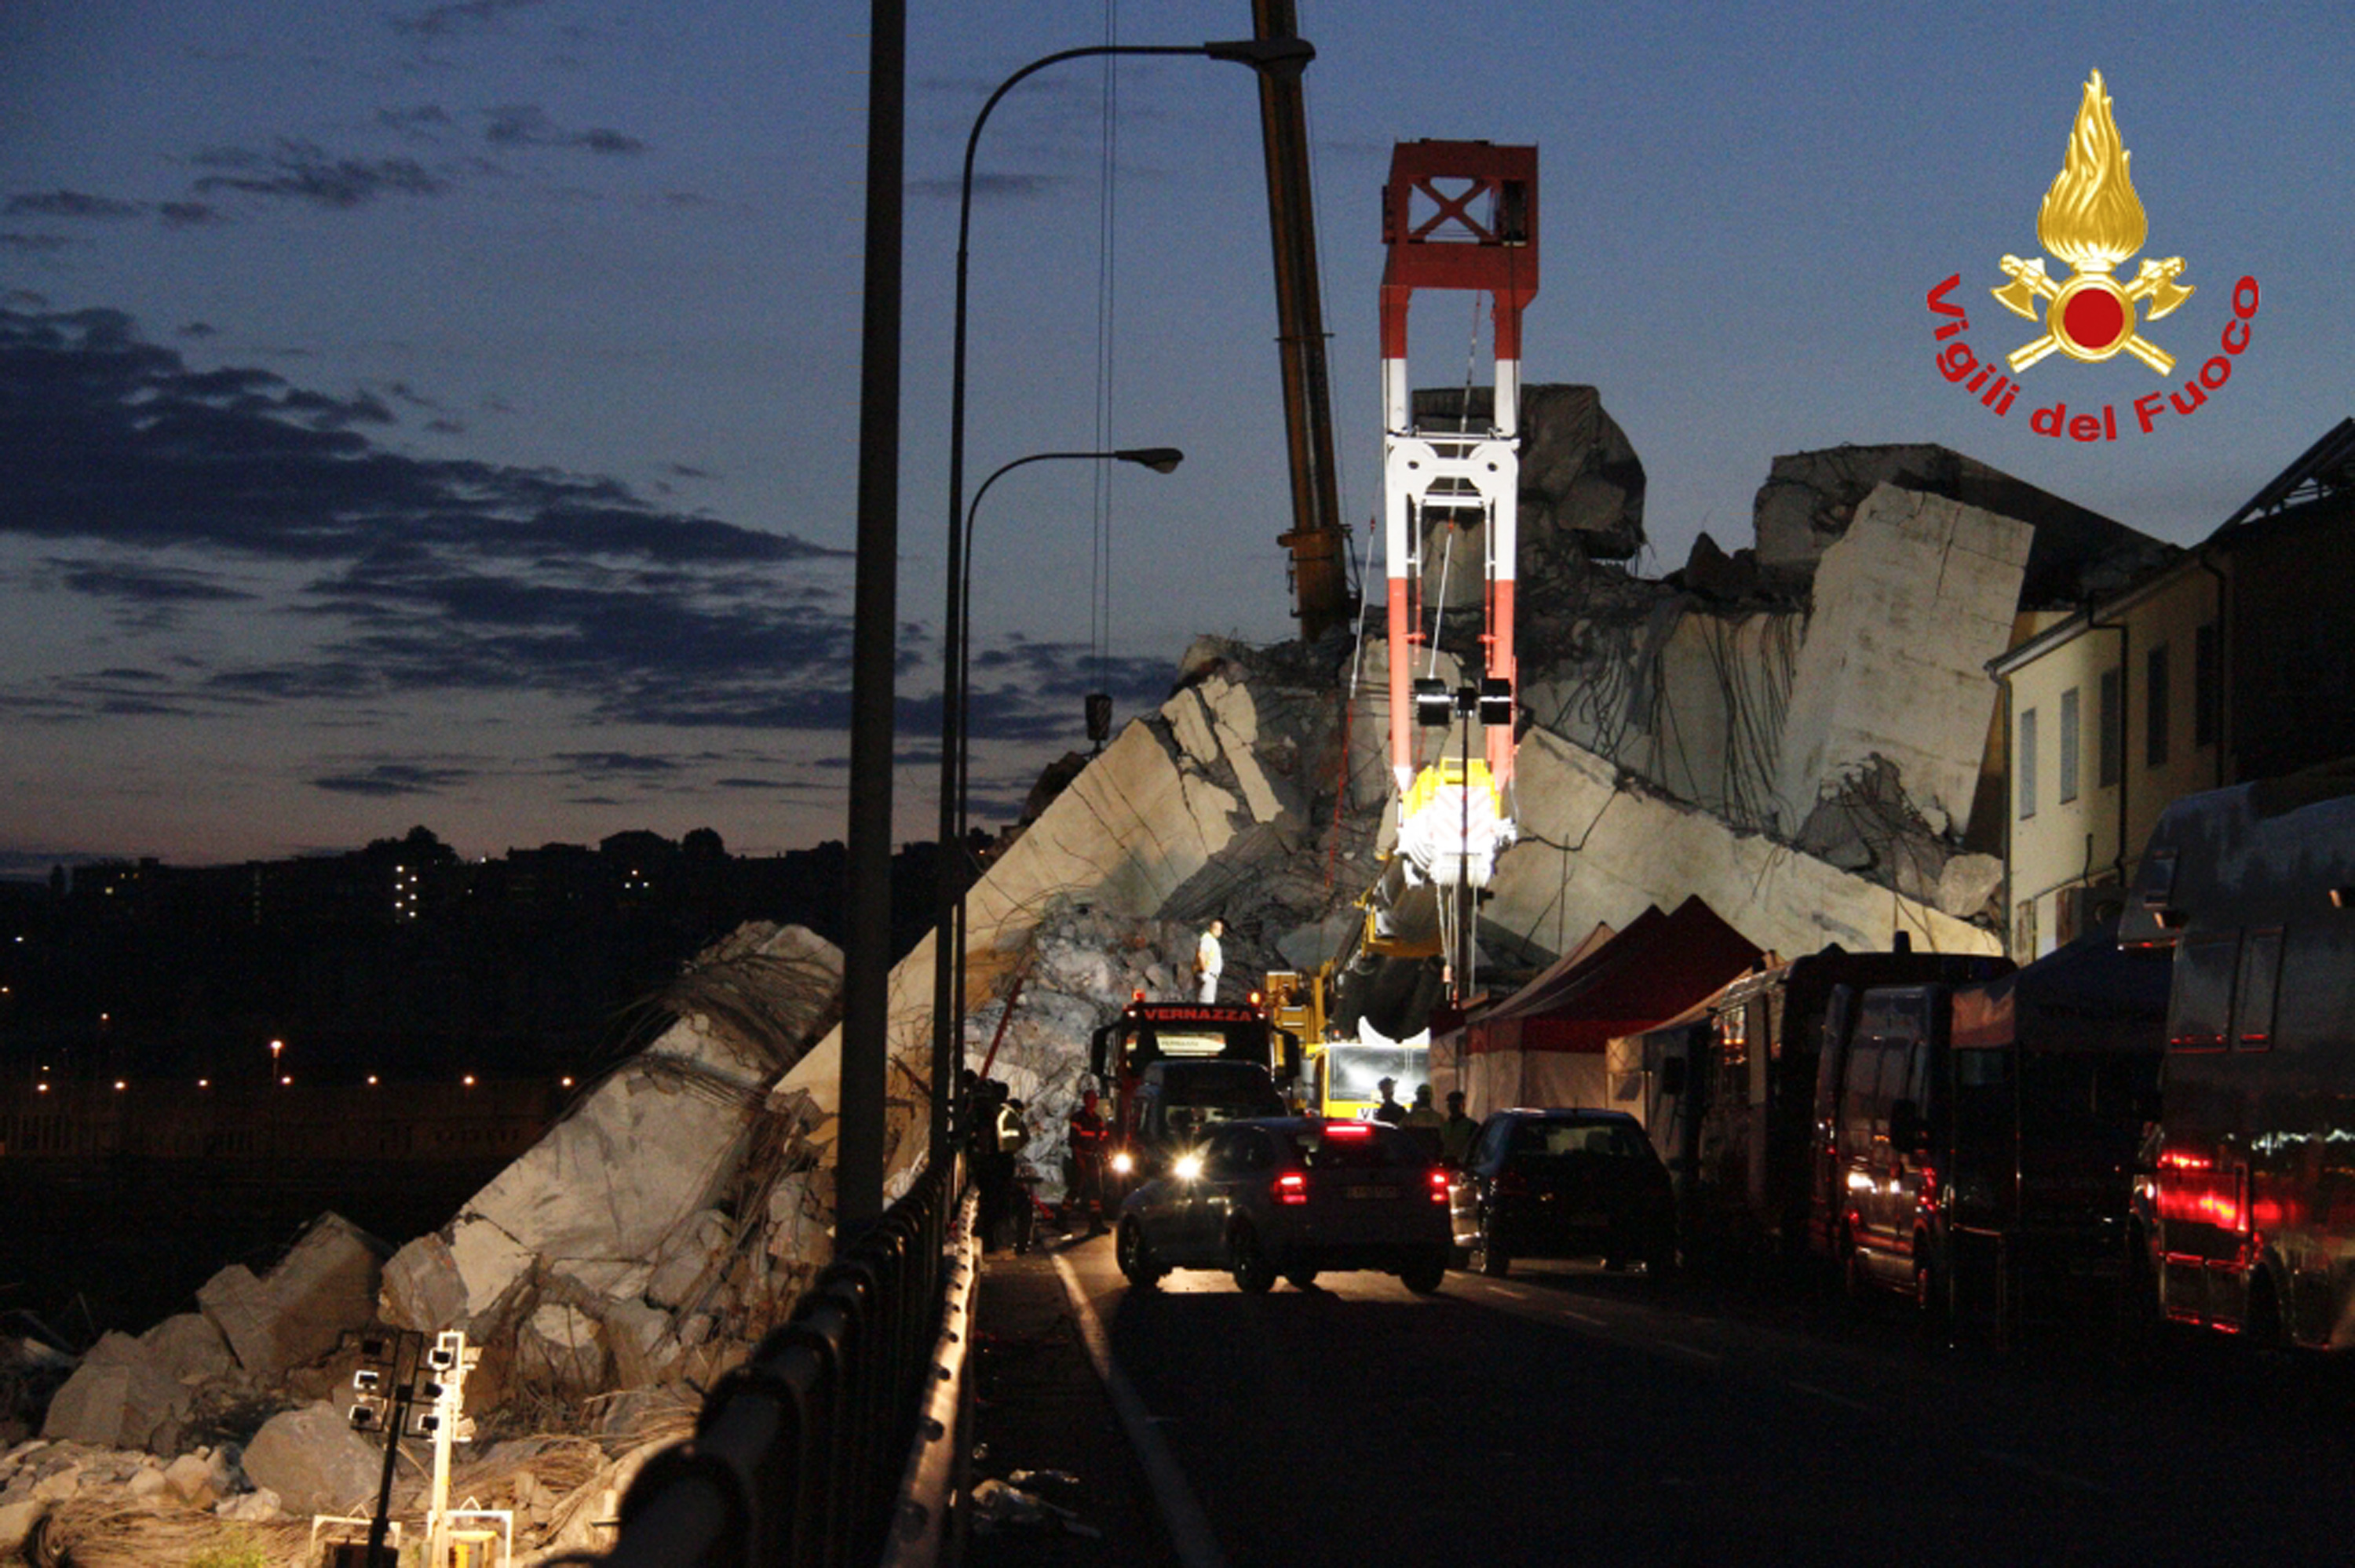 <div class='meta'><div class='origin-logo' data-origin='none'></div><span class='caption-text' data-credit='Vigili Del Fuoco via AP'>In this photo released by the Italian firefighters, rescue teams work among the rubble of the collapsed Morandi highway bridge in Genoa, northern Italy, Wednesday, Aug. 15, 2018.</span></div>